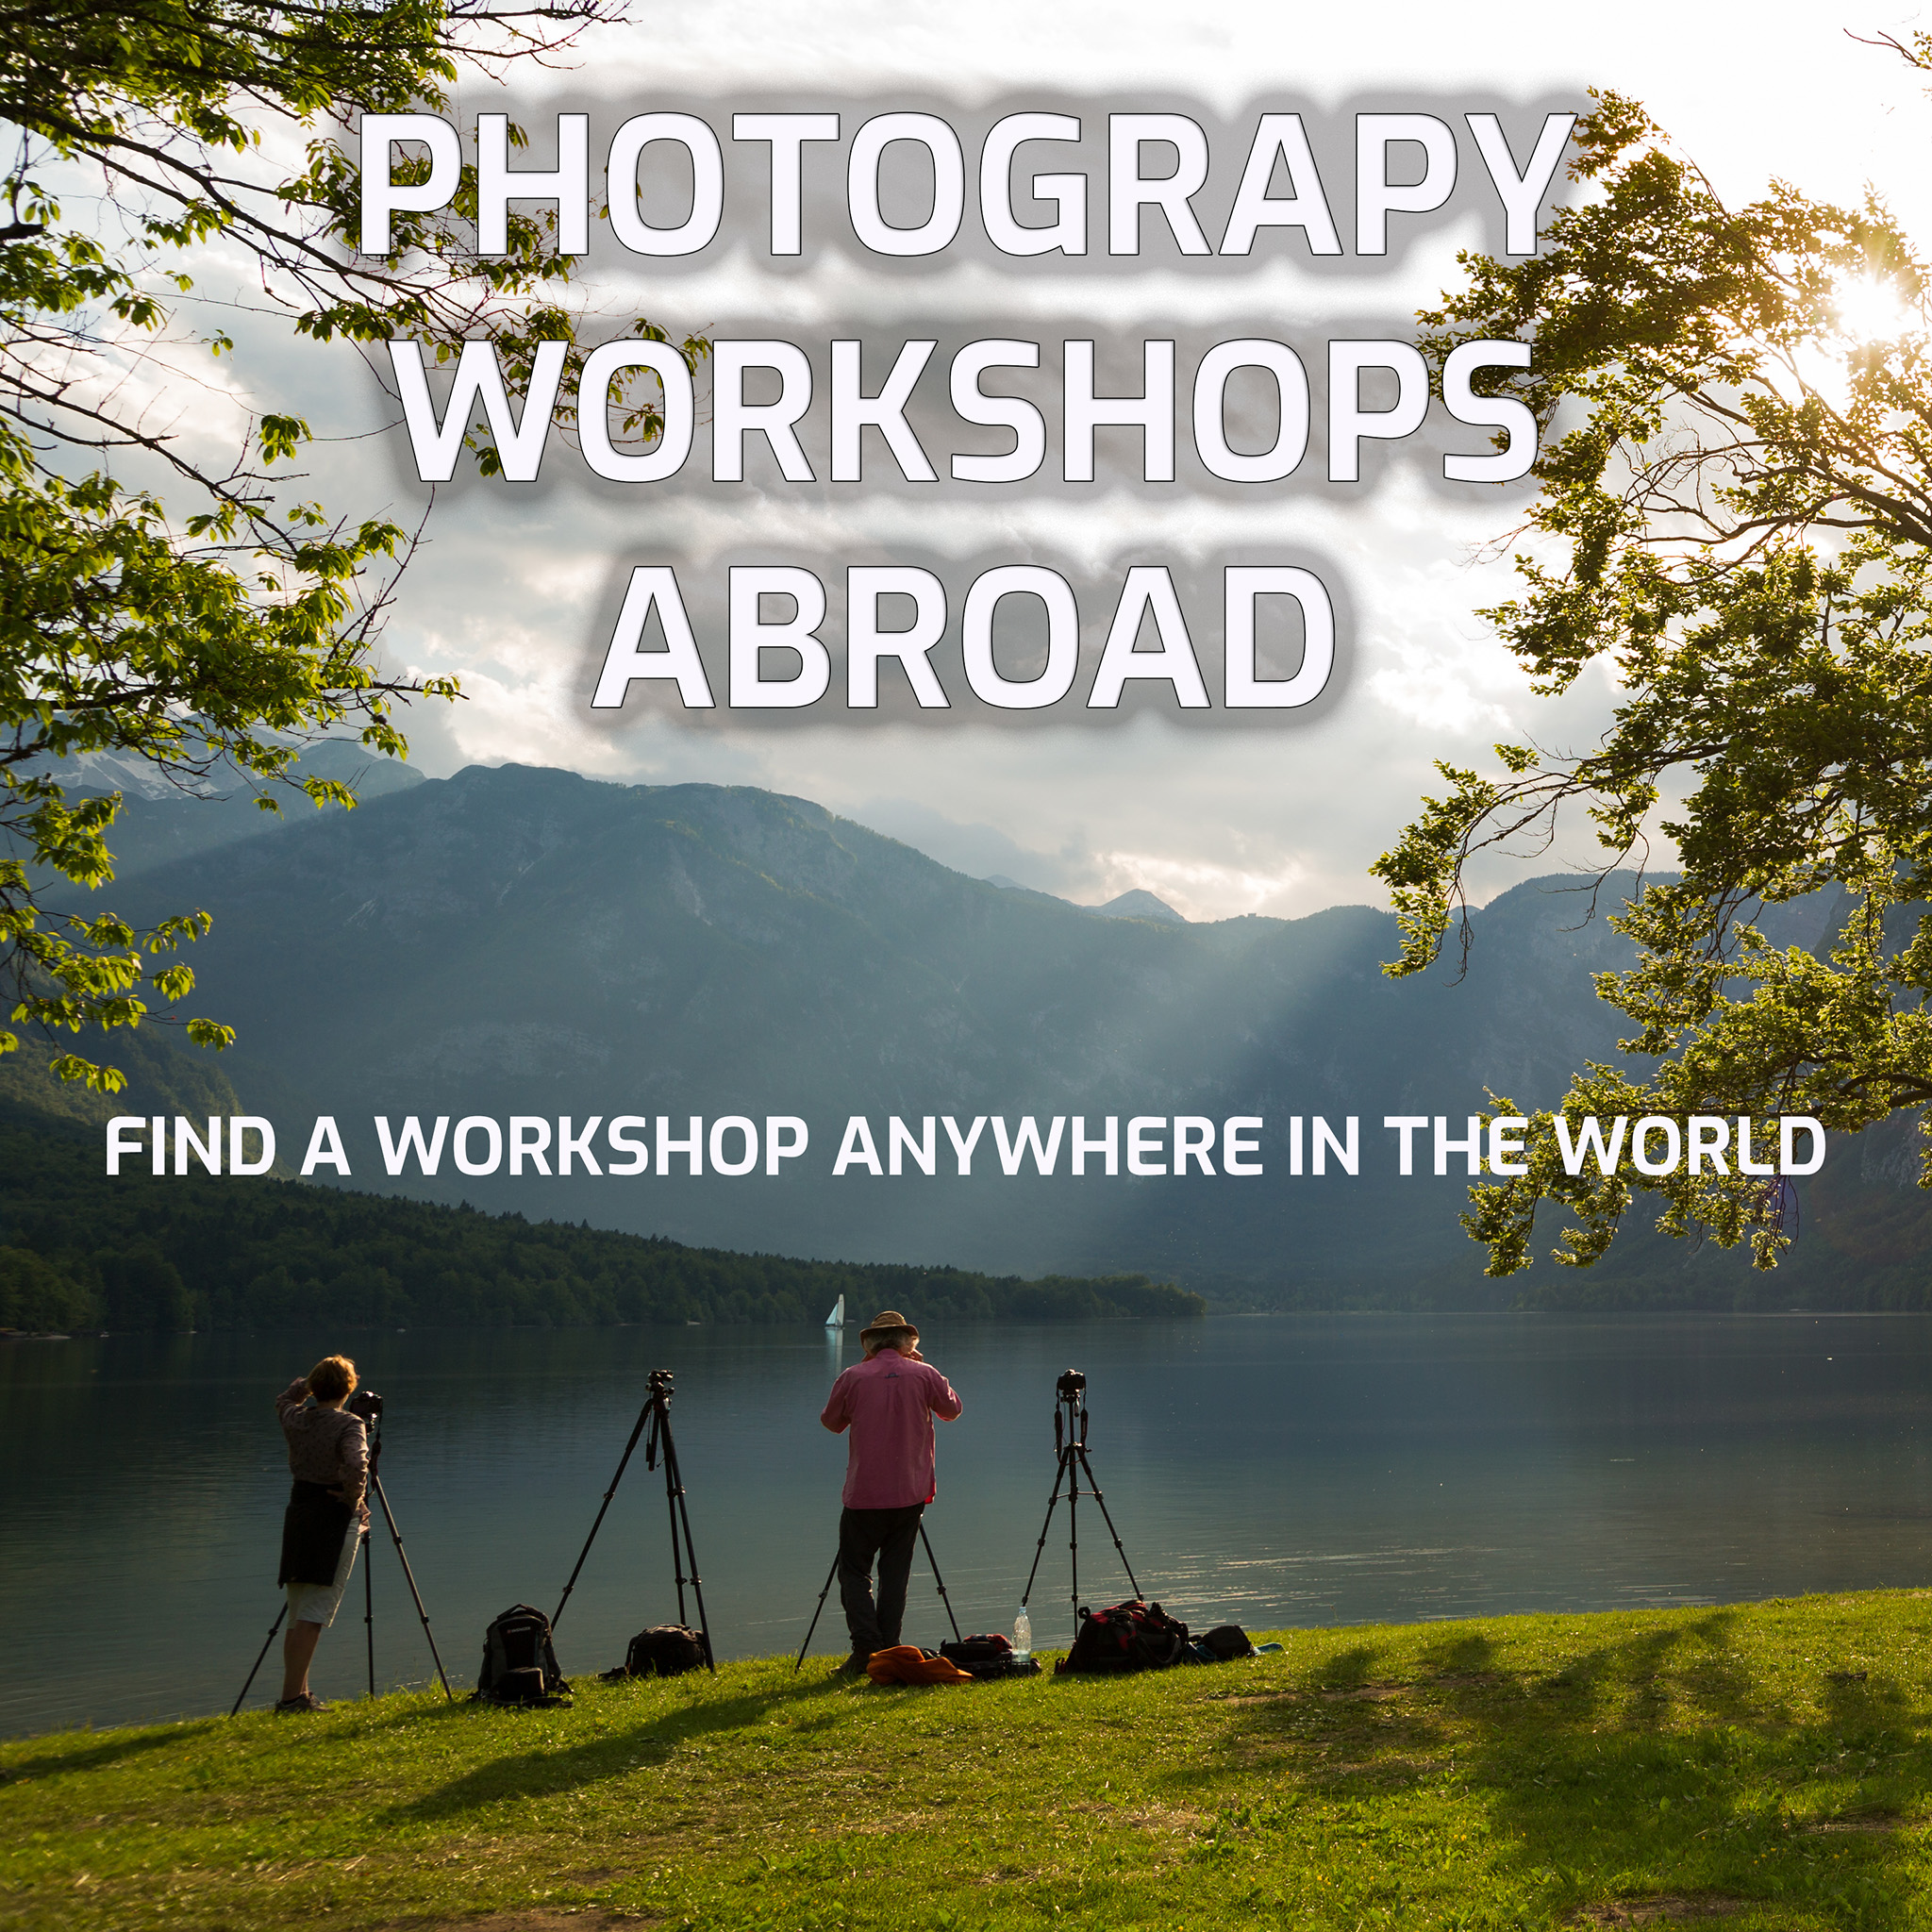 Photography Workshops Abroad - find a workshop anywhere in the world.